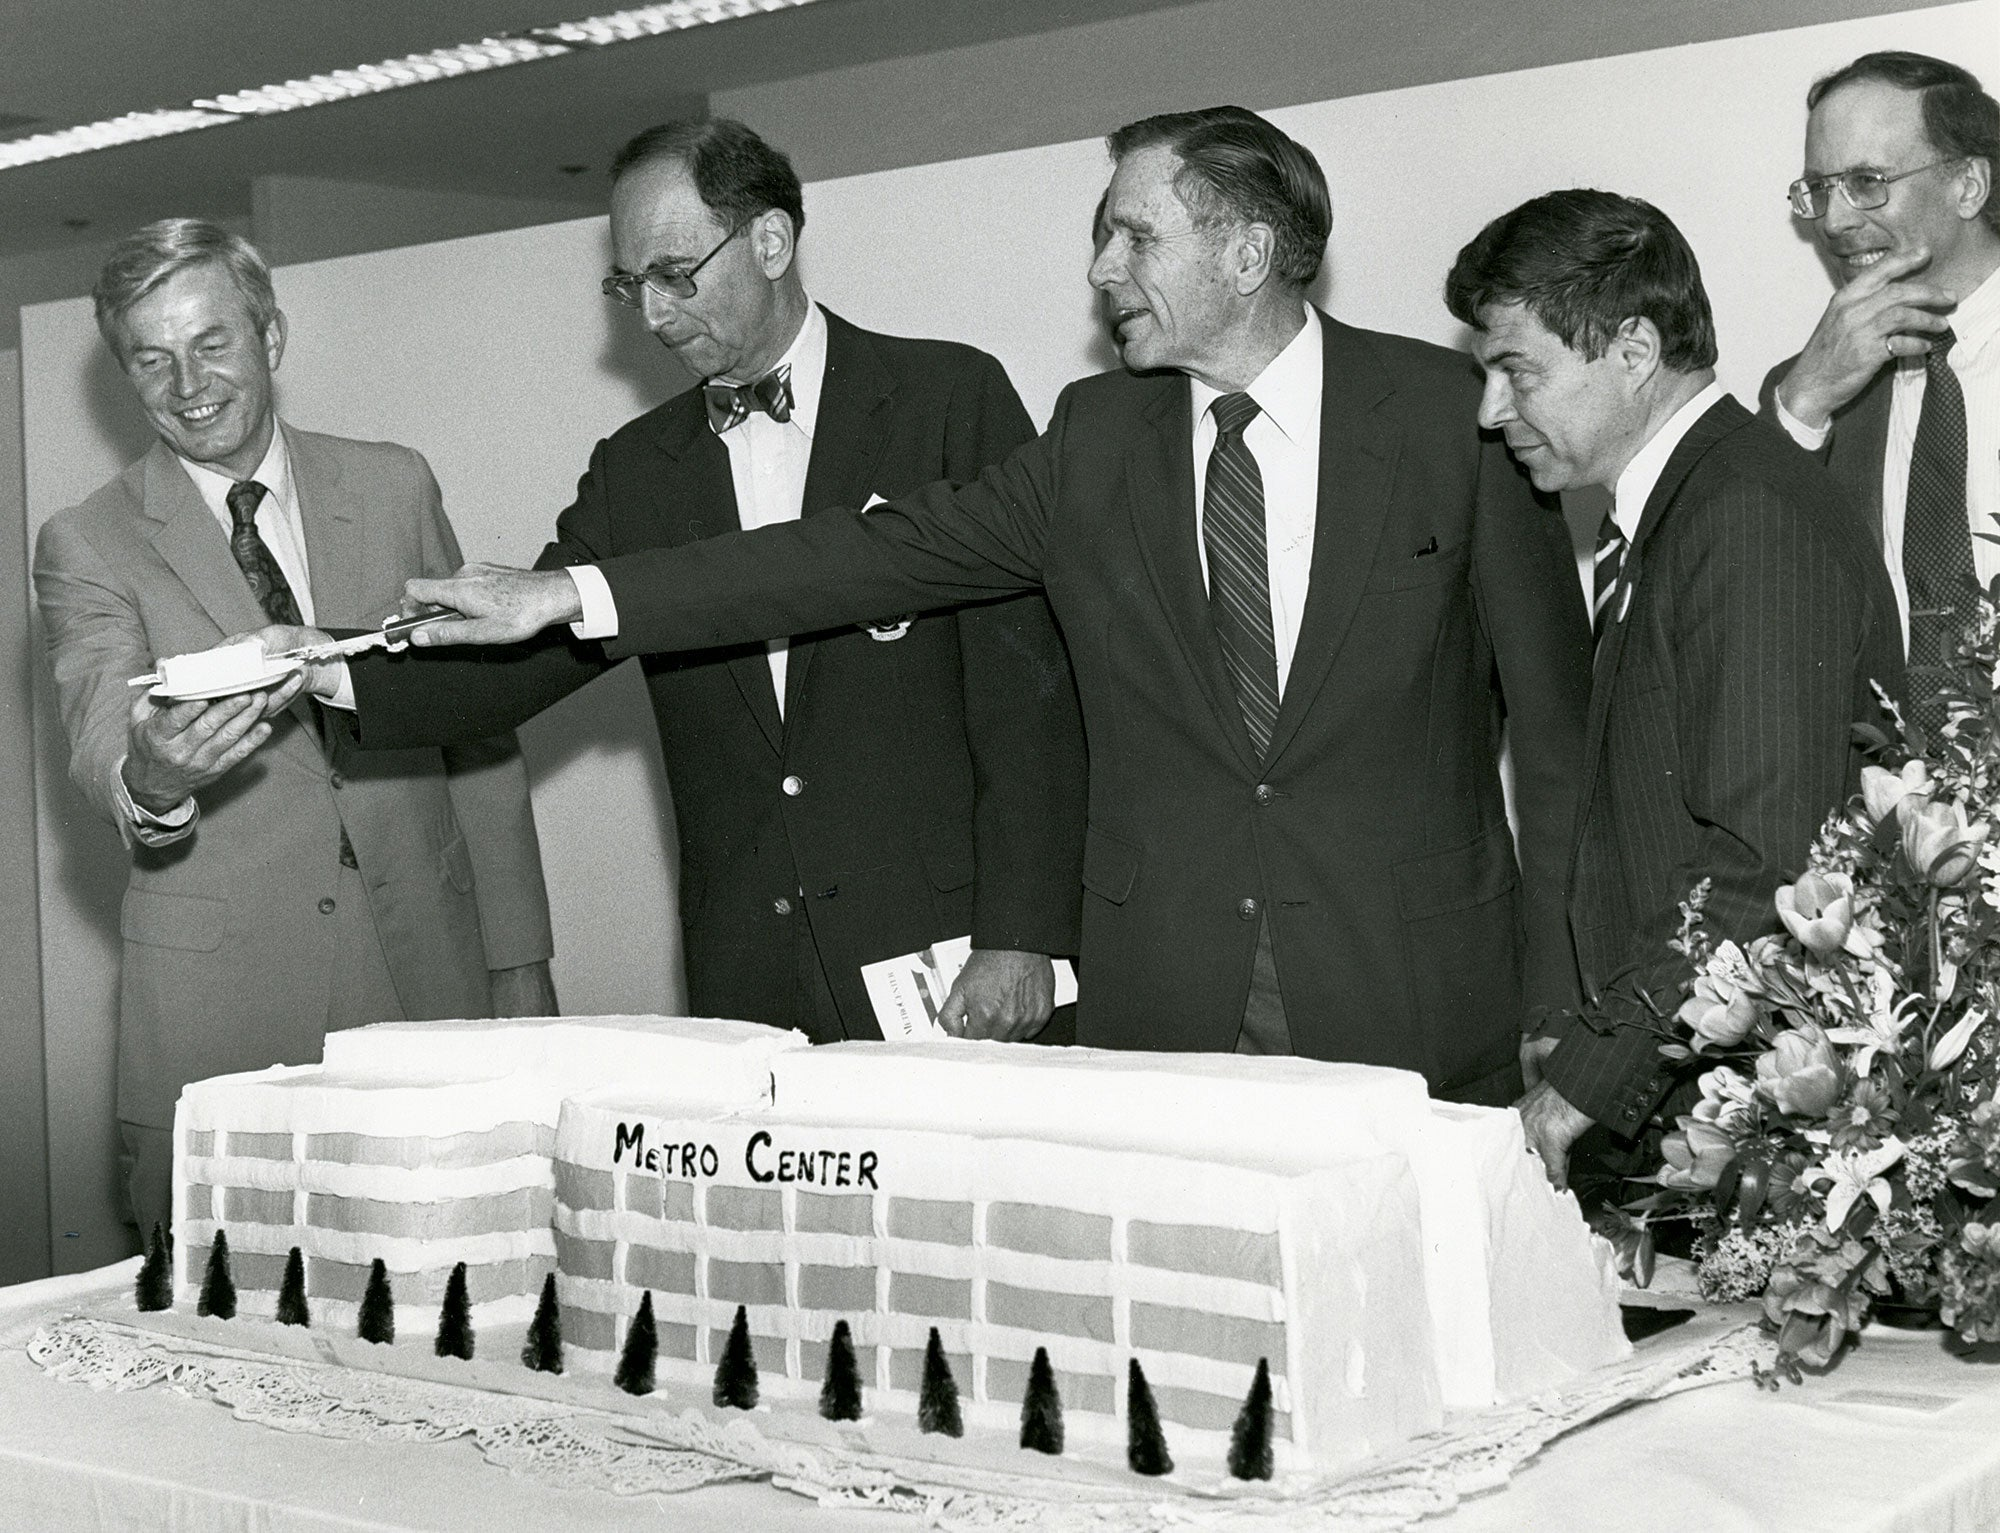 April 1984 MetroCenter opening celebration. Left to right: MTC Executive Director Lawrence D. Dahms, MTC Chair Quentin Kopp, ABAG President and MTC Commissioner Joseph P. Bort, ABAG Executive Director Revan Tranter and BART General Manager Keith Bernard.